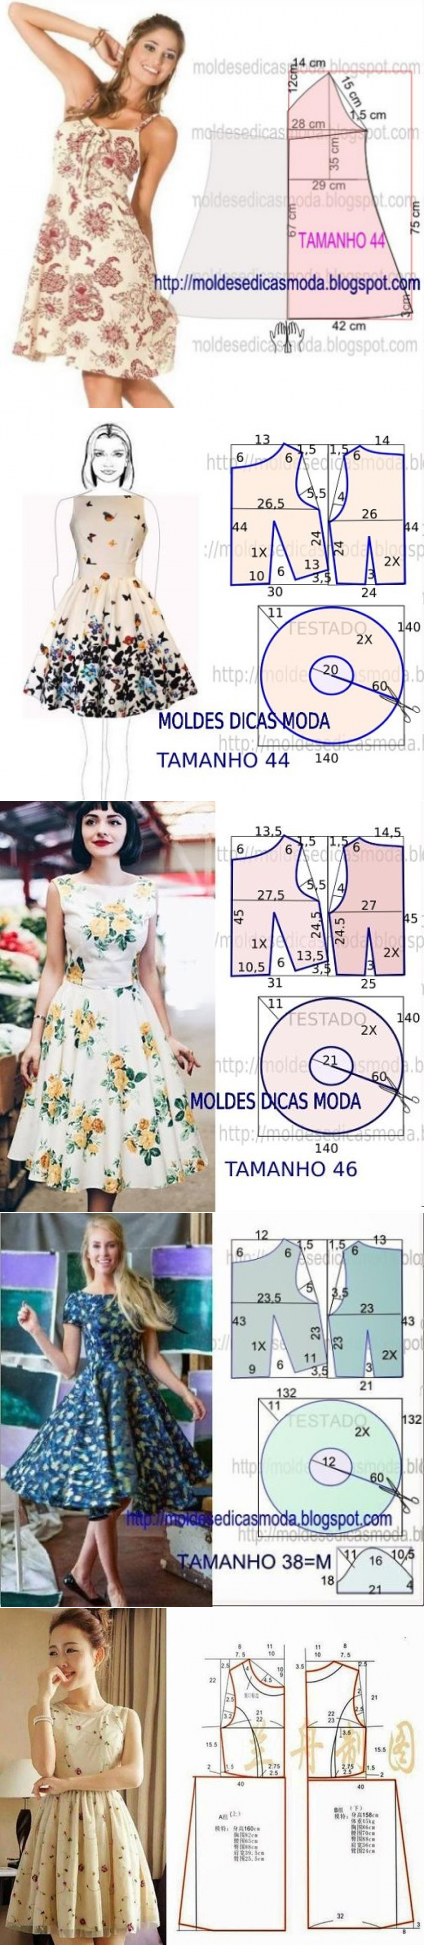 шьеи по выкройкам | ropa | Pinterest | Sewing, Sewing patterns y ...